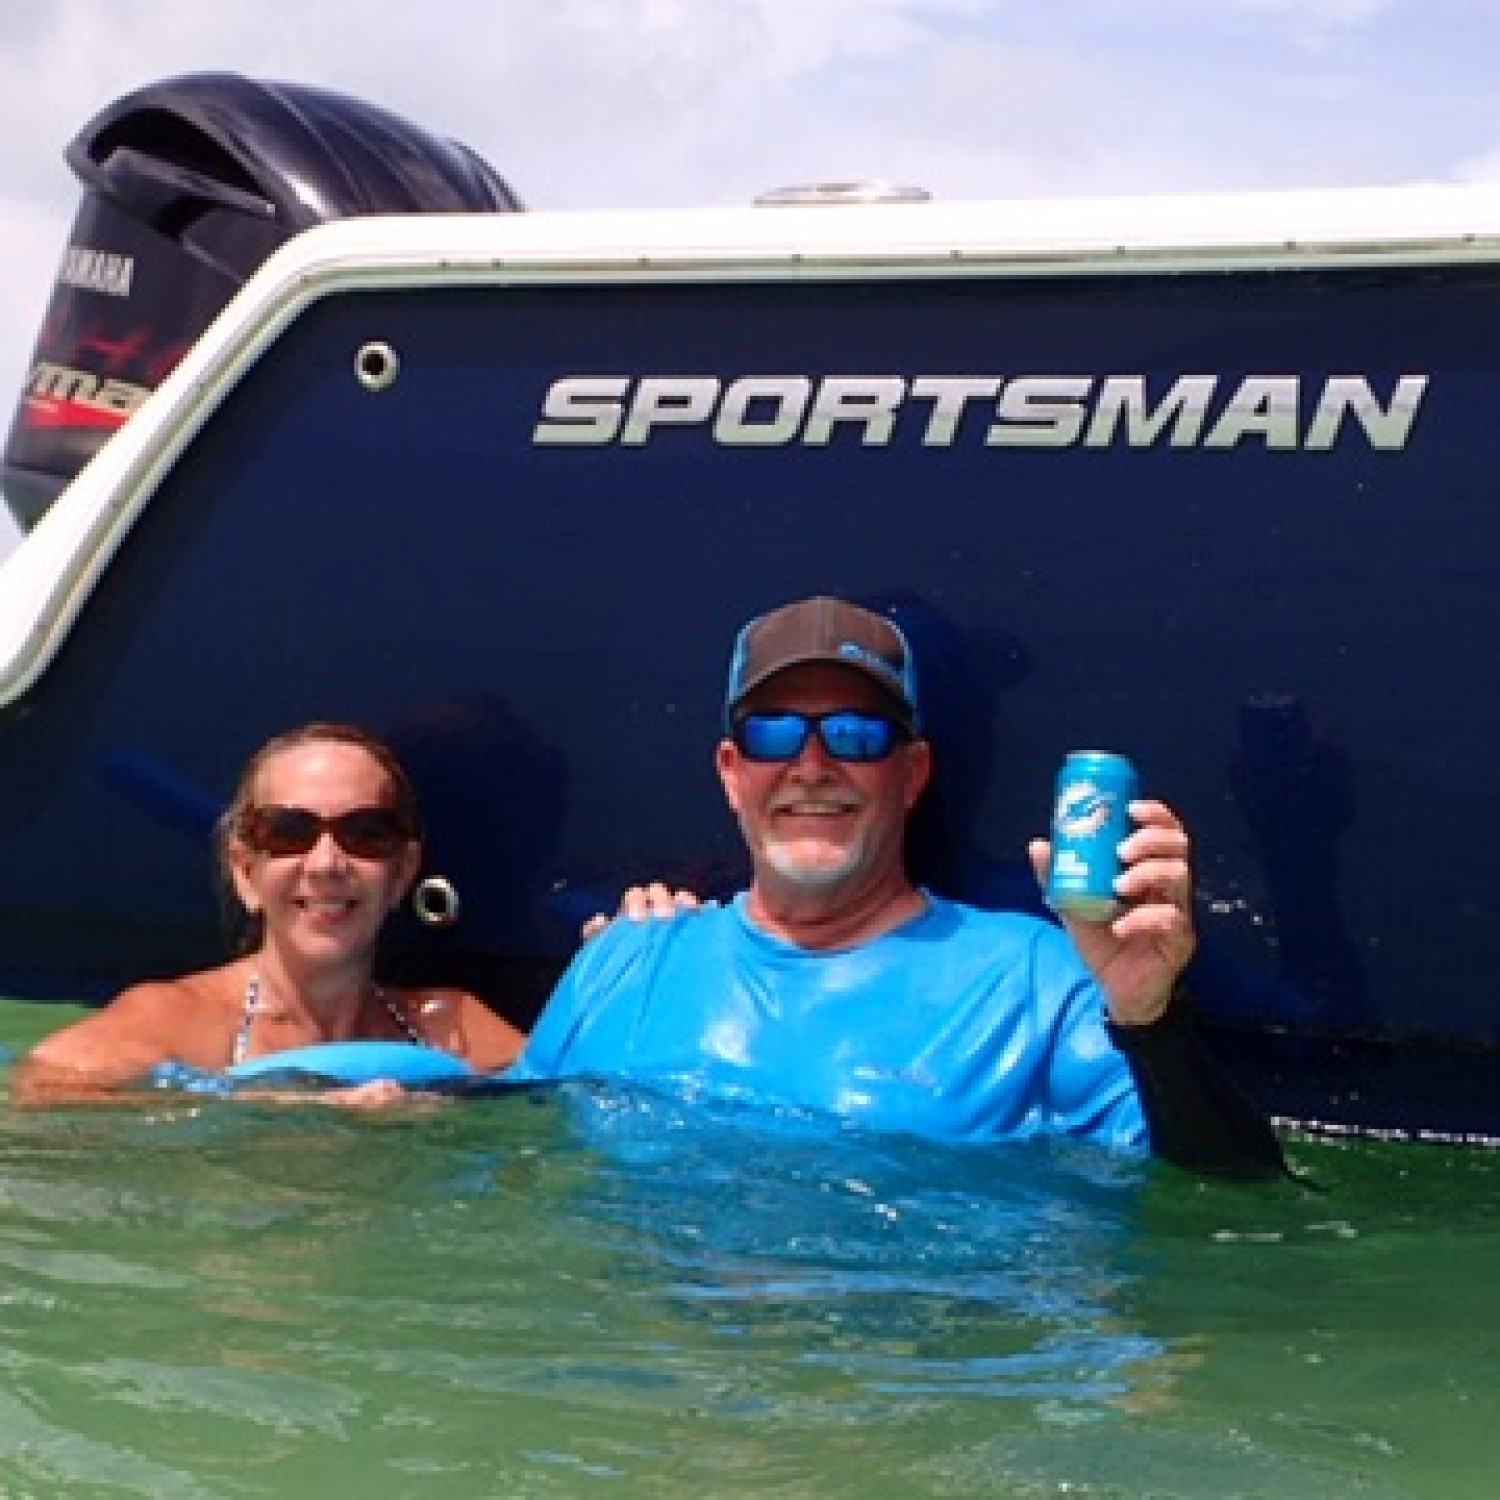 Title: Pre Irma - On board their Sportsman Open 232 Center Console - Location: Marathon, fla. Participating in the Photo Contest #SportsmanNovember2017